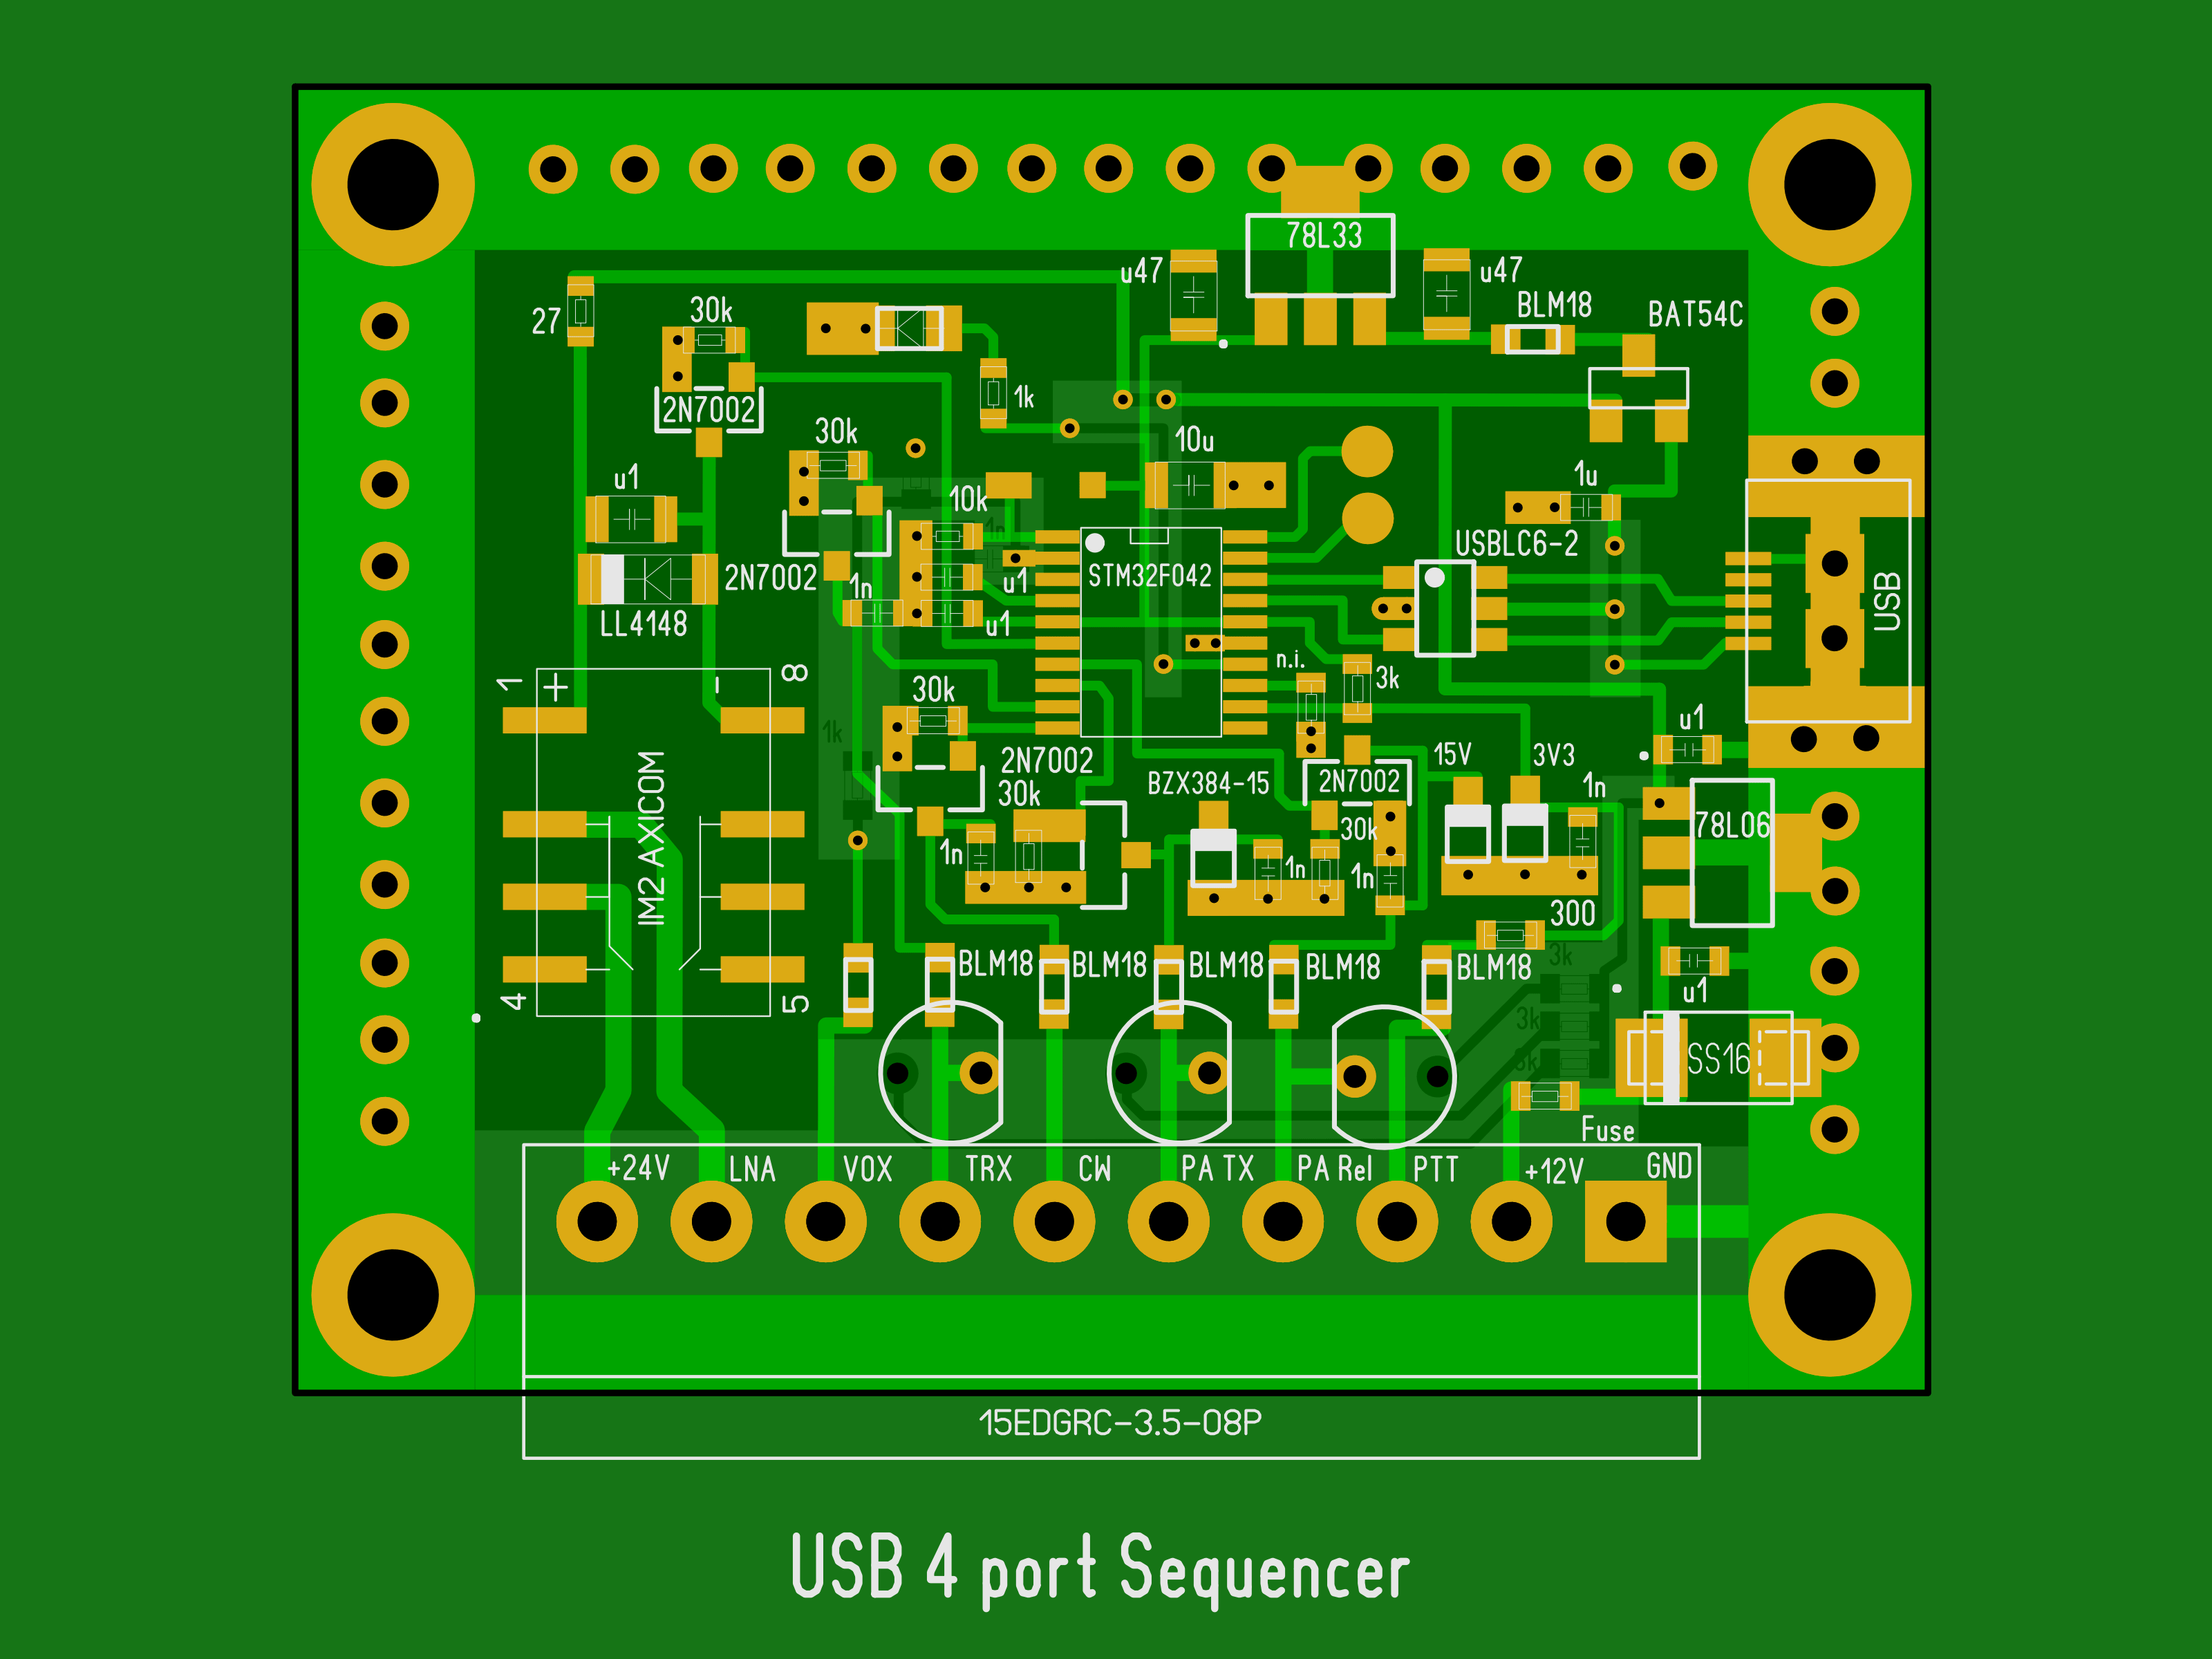 Sequencer with USB port layout